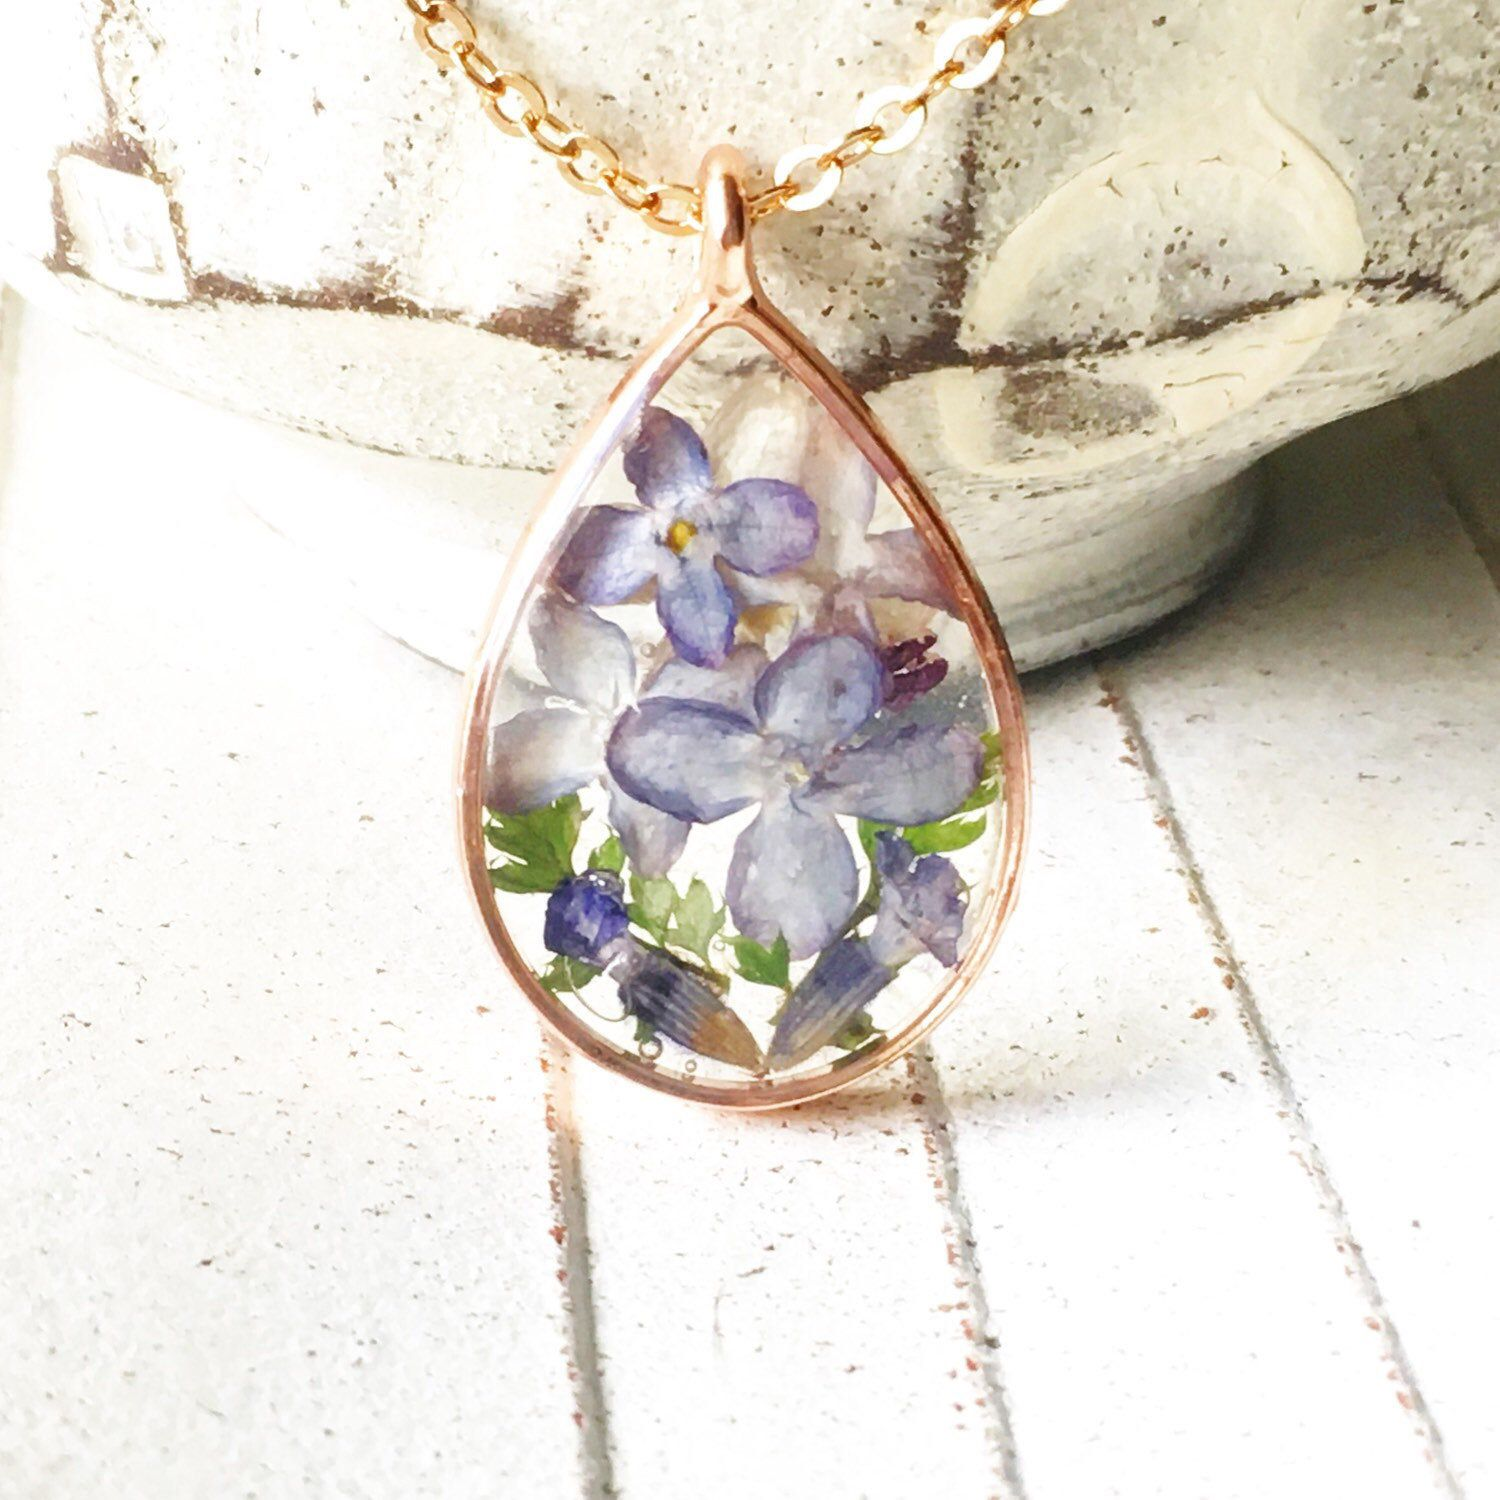 Cchenrydesigns Shared A New Photo On Etsy In 2020 Purple Flower Necklace Dried Flower Jewelry Lavender Jewellery